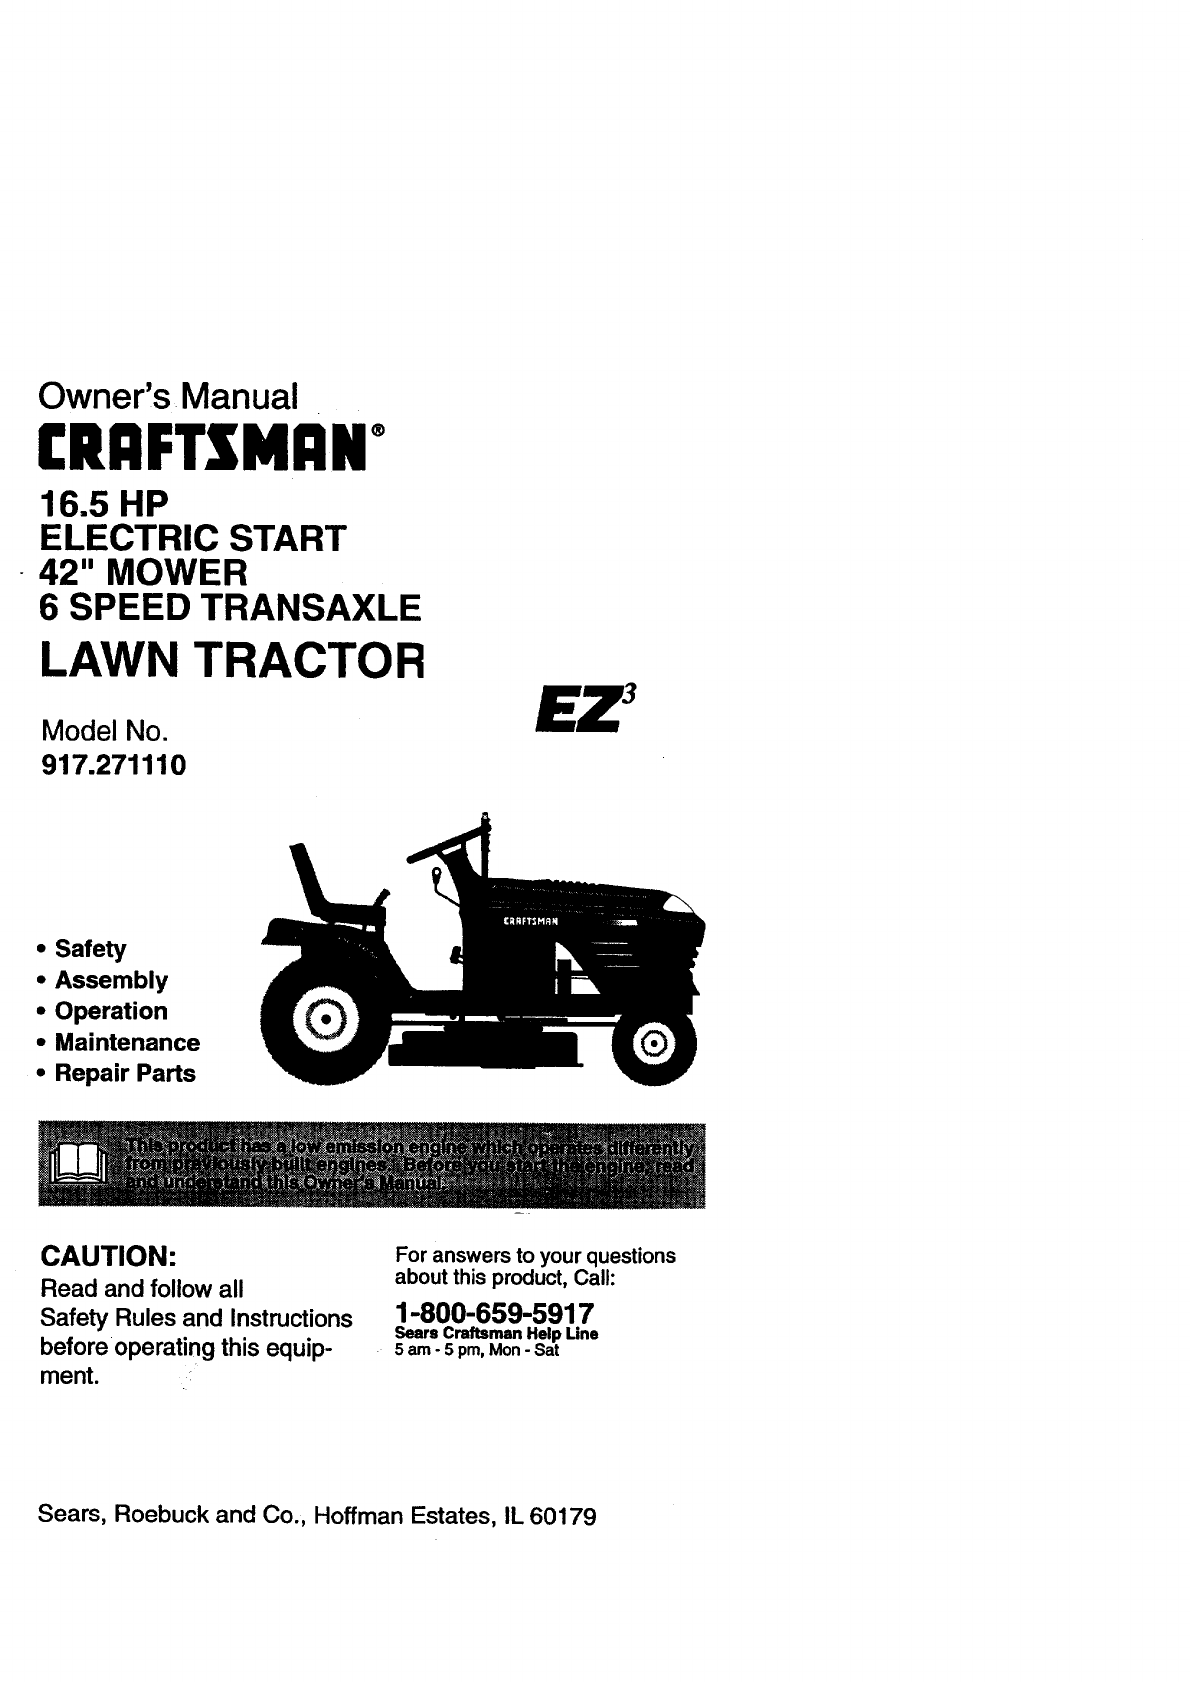 7a737f57 67af 49c5 a541 079cbf11b29b bg1 craftsman lawn mower 917 271110 user guide manualsonline com wiring diagram for craftsman lt1000 at bayanpartner.co